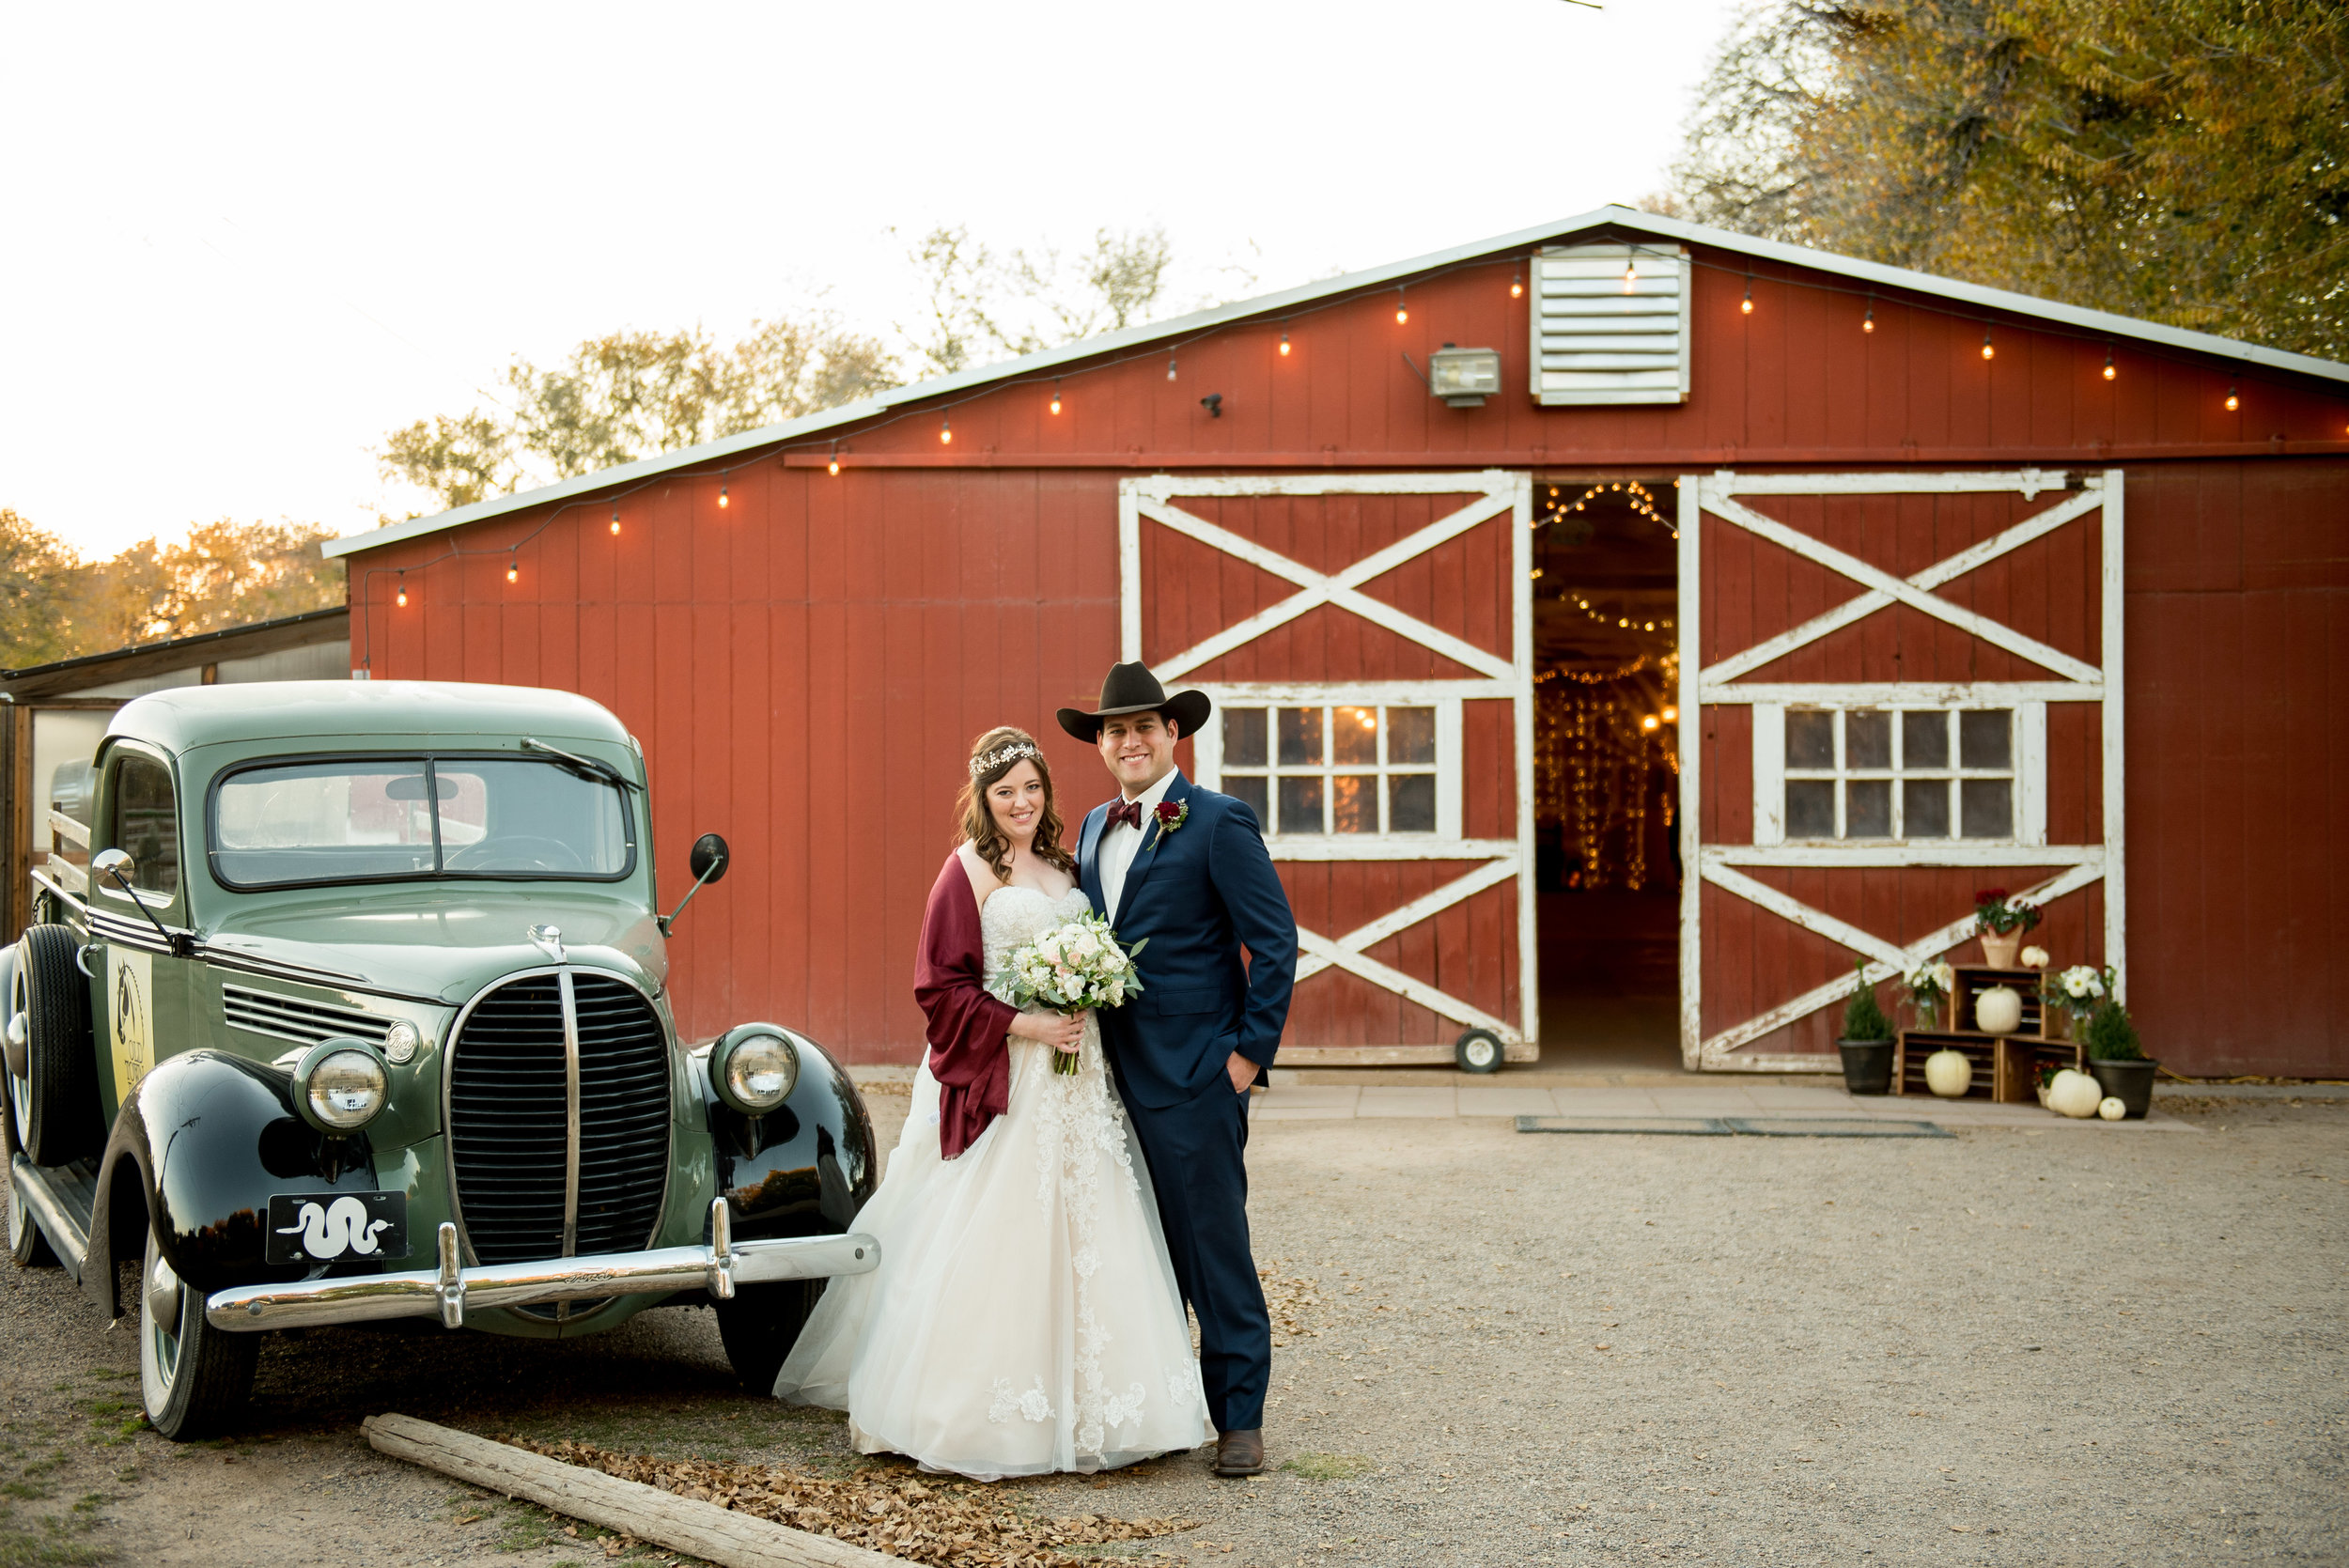 Old Town Farm Albuquerque Wedding Photographer